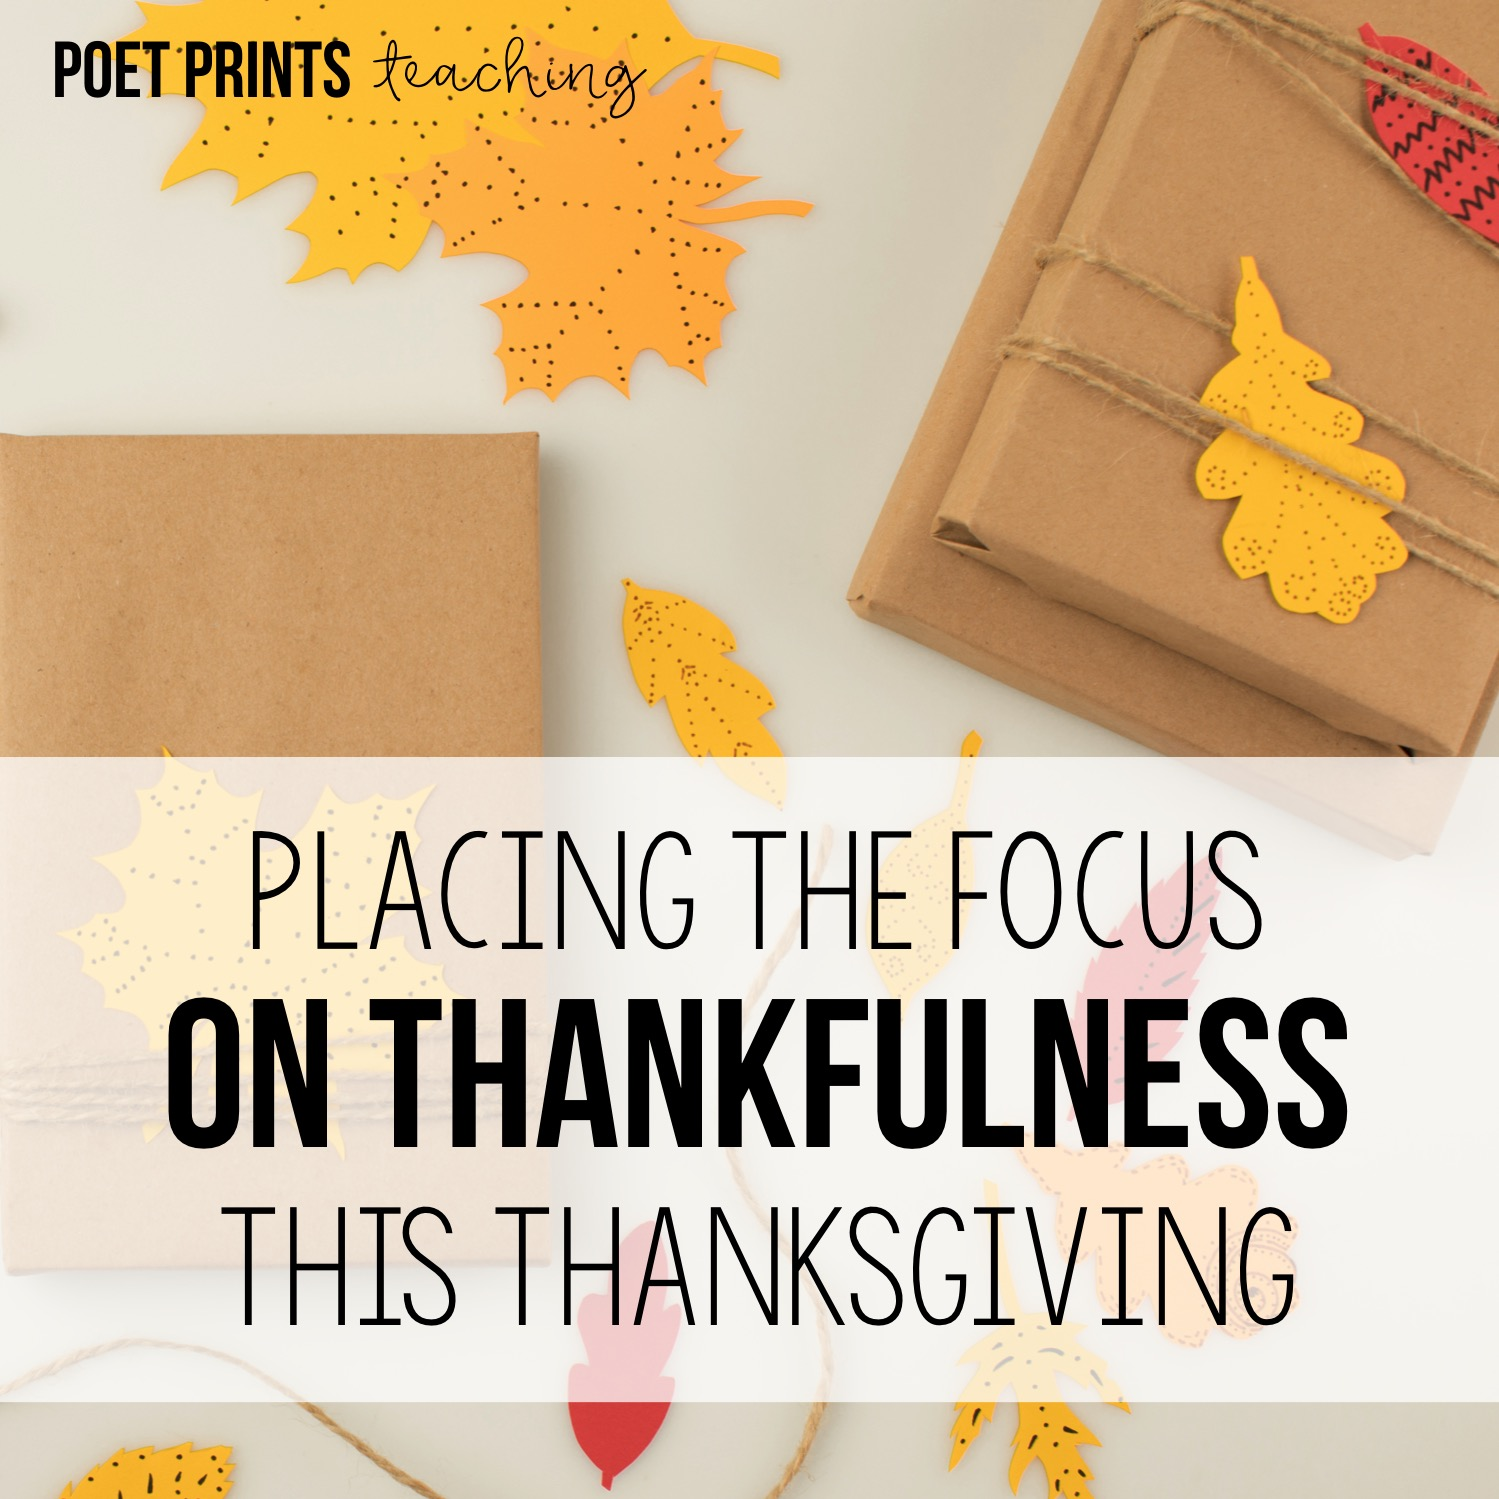 All About Gratitude: Placing the Focus on Thankfulness This Thanksgiving